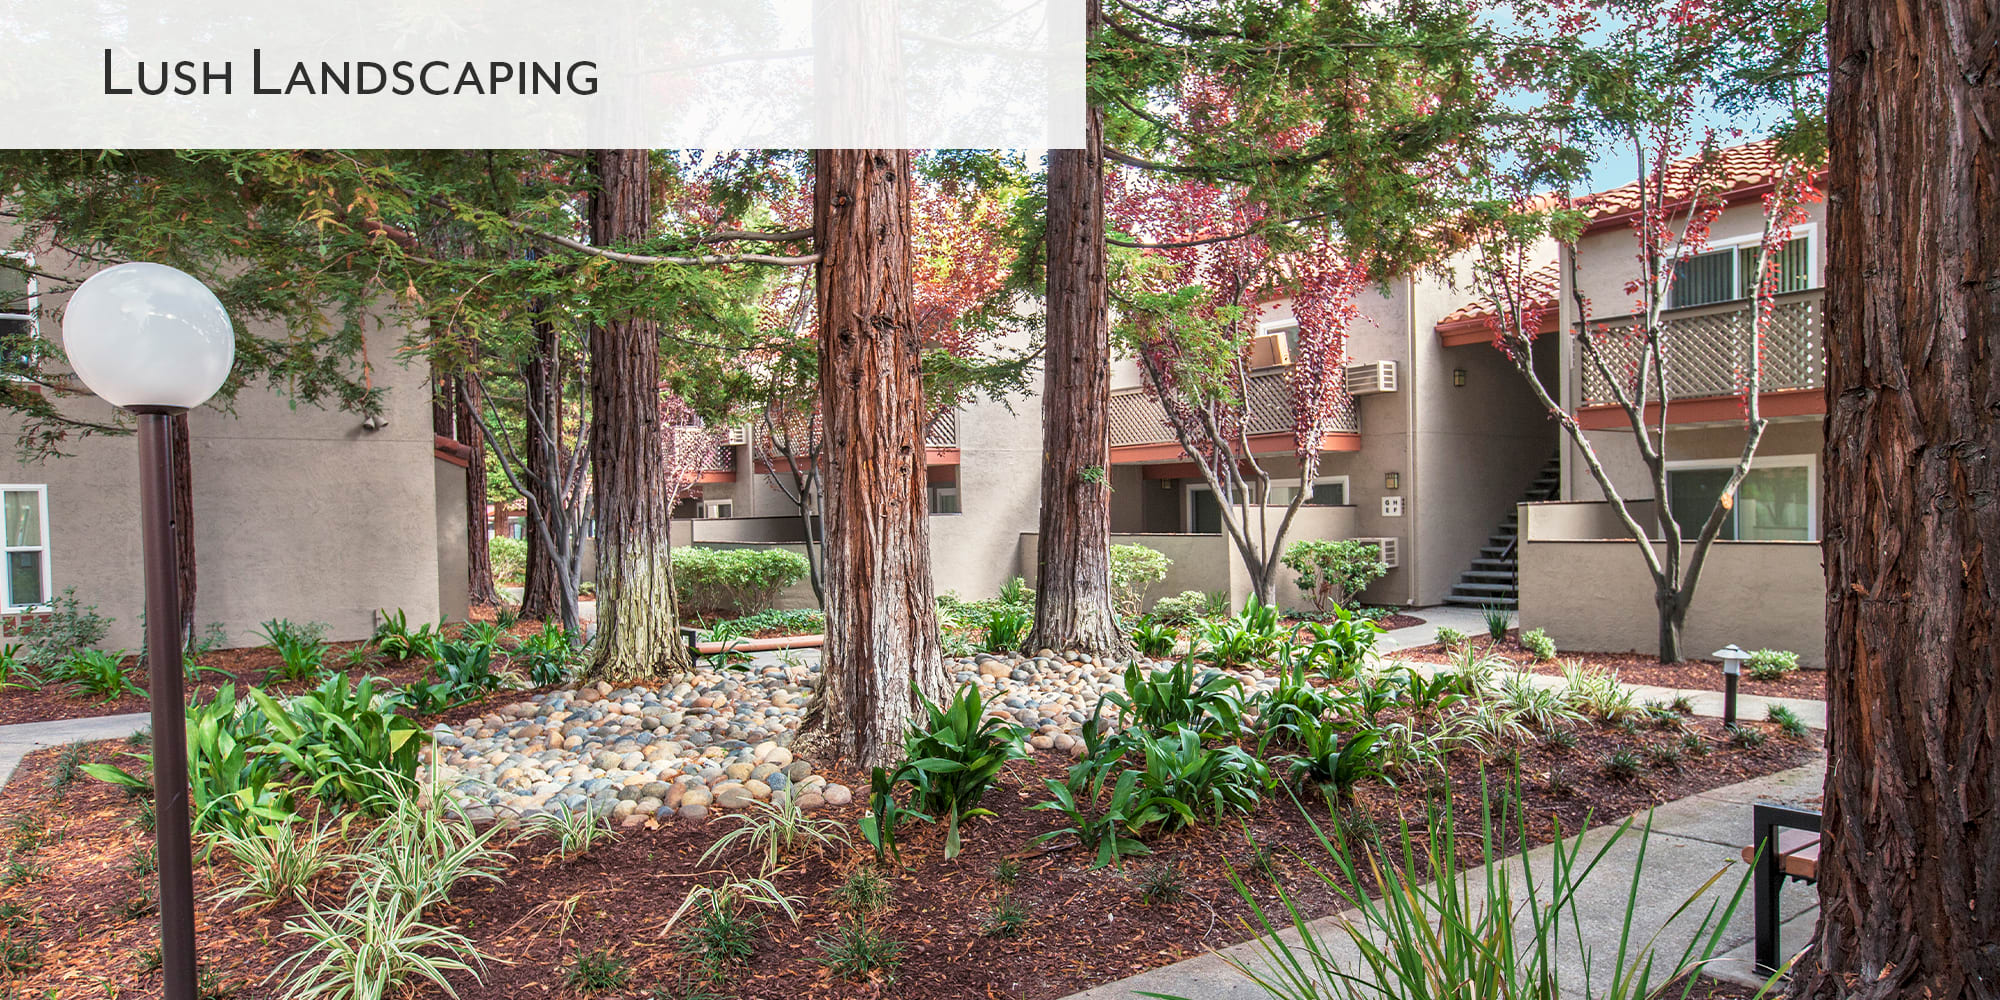 Lush landscaping at Valley Plaza Villages in Pleasanton, California